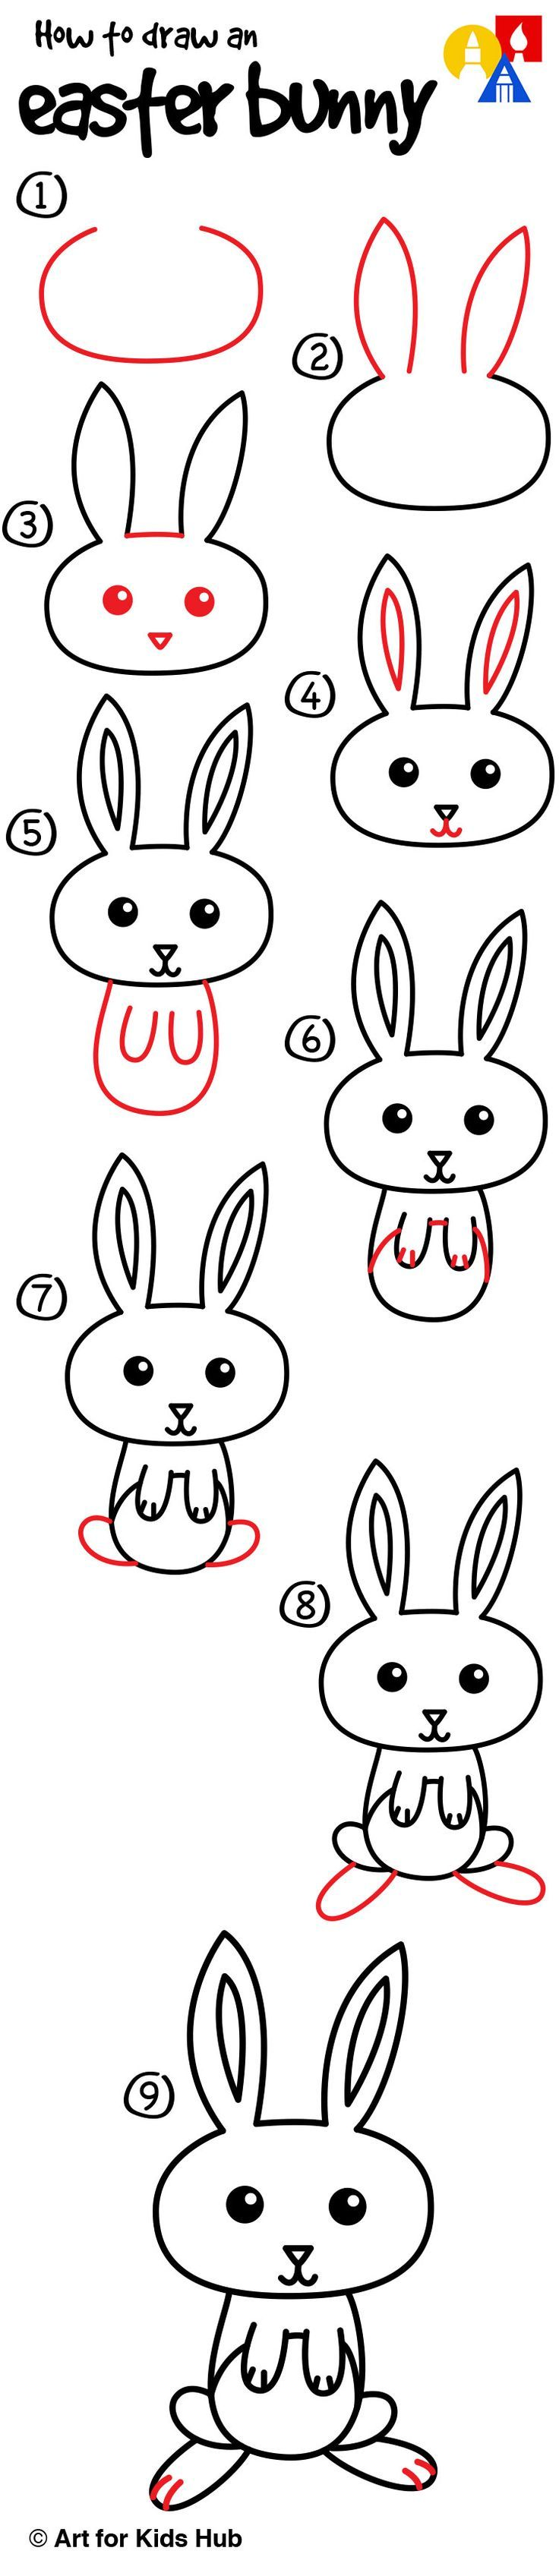 Learn how to draw a cartoon Eater bunny!